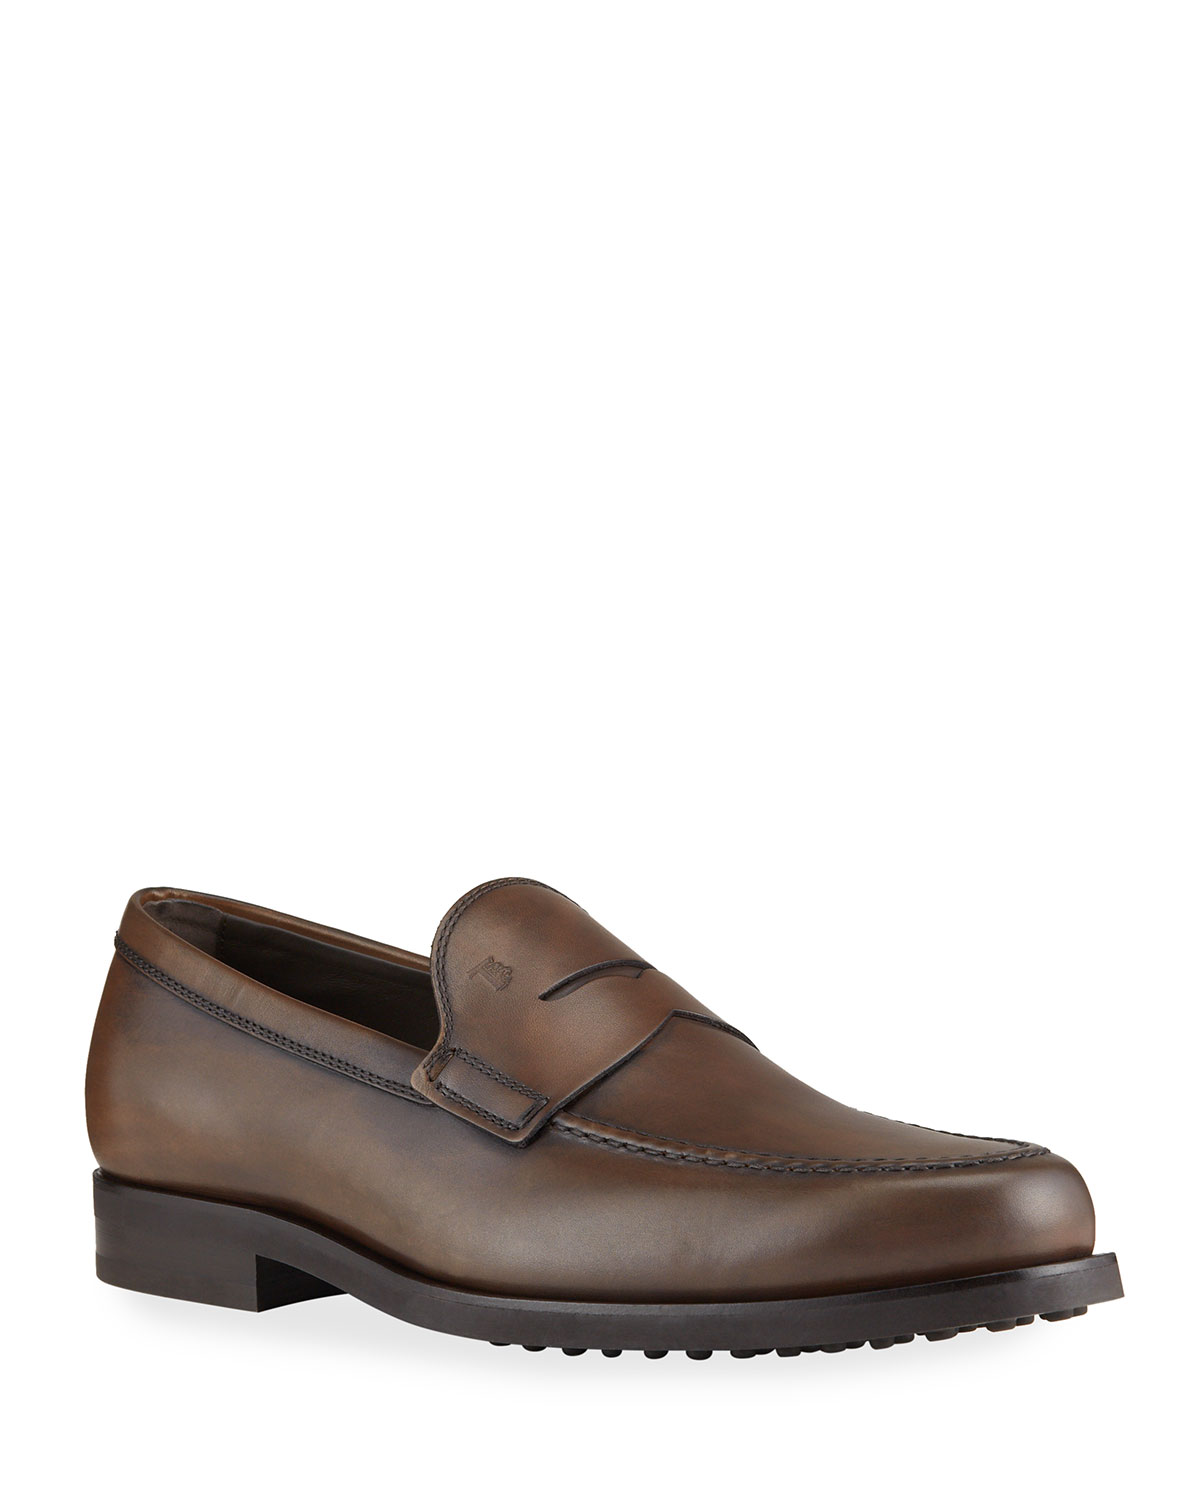 Tod's MEN'S PENNY LEATHER SLIP-ON LOAFERS